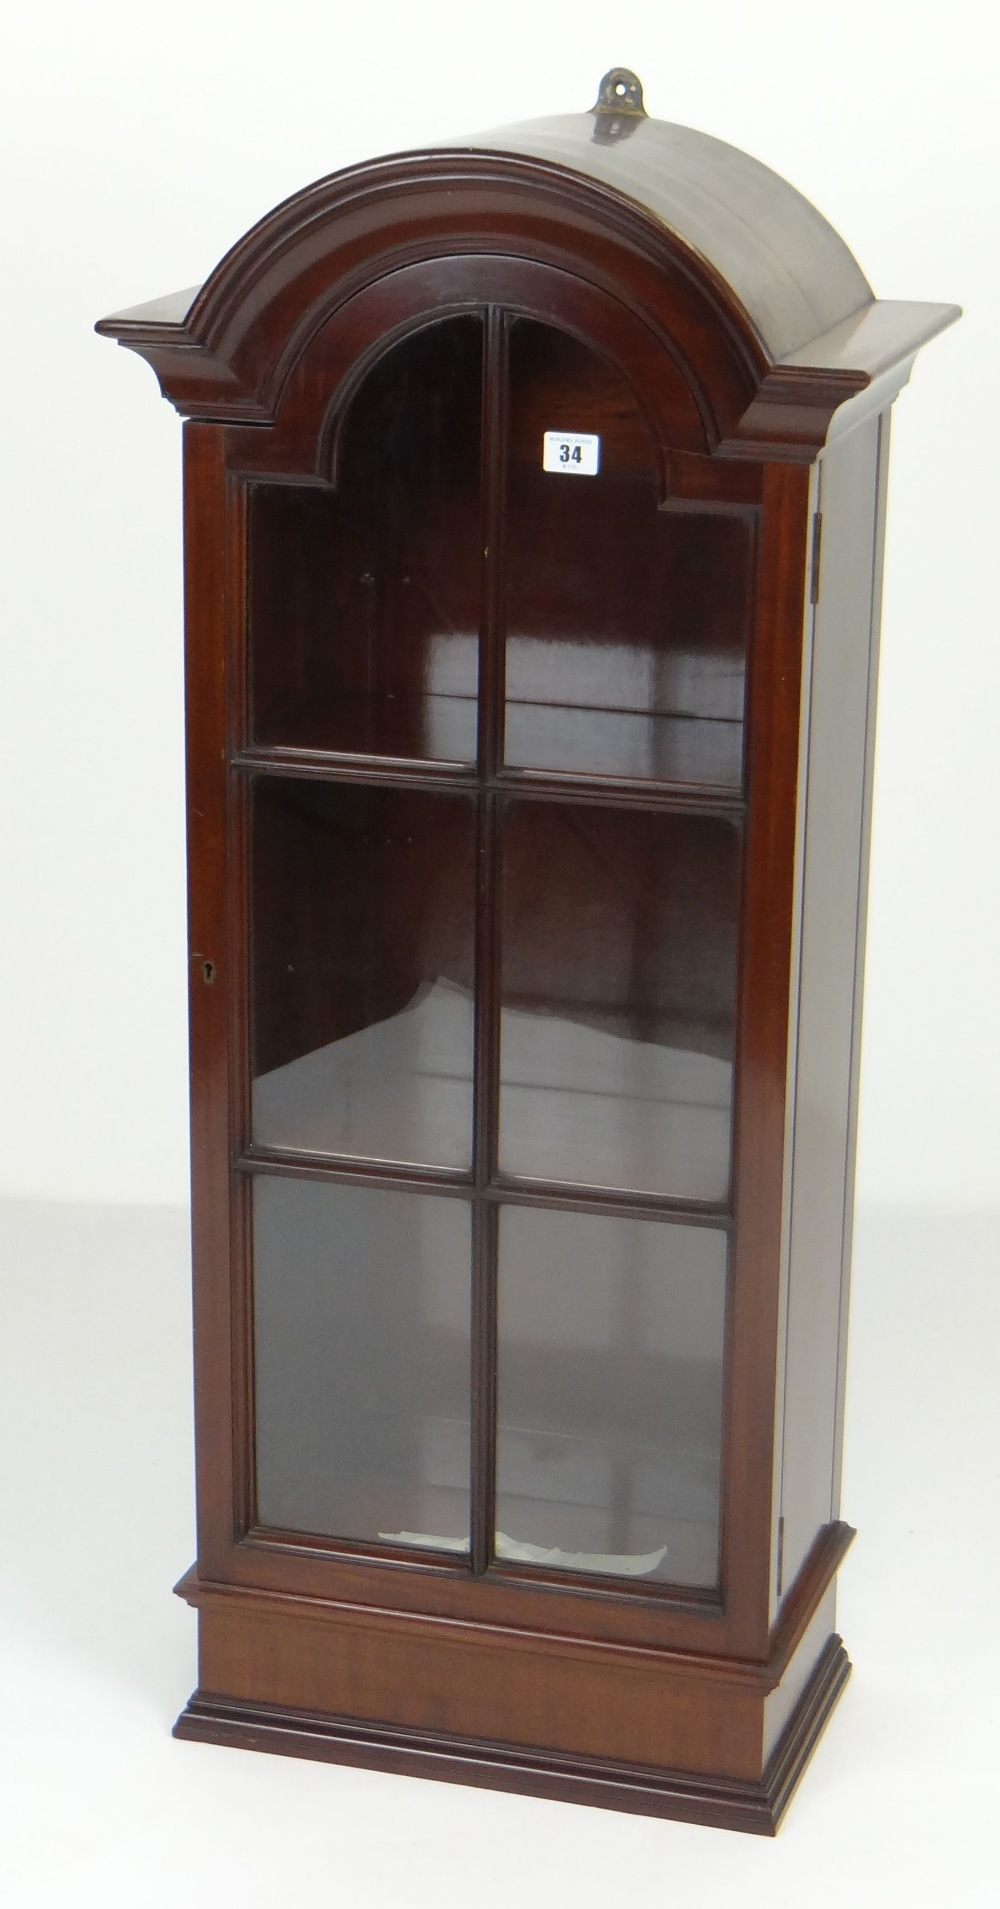 Lot 34 - NEAT ANTIQUE-REPRODUCTION HANGING MAHOGANY CABINET, single sectional glazed door with dome top,